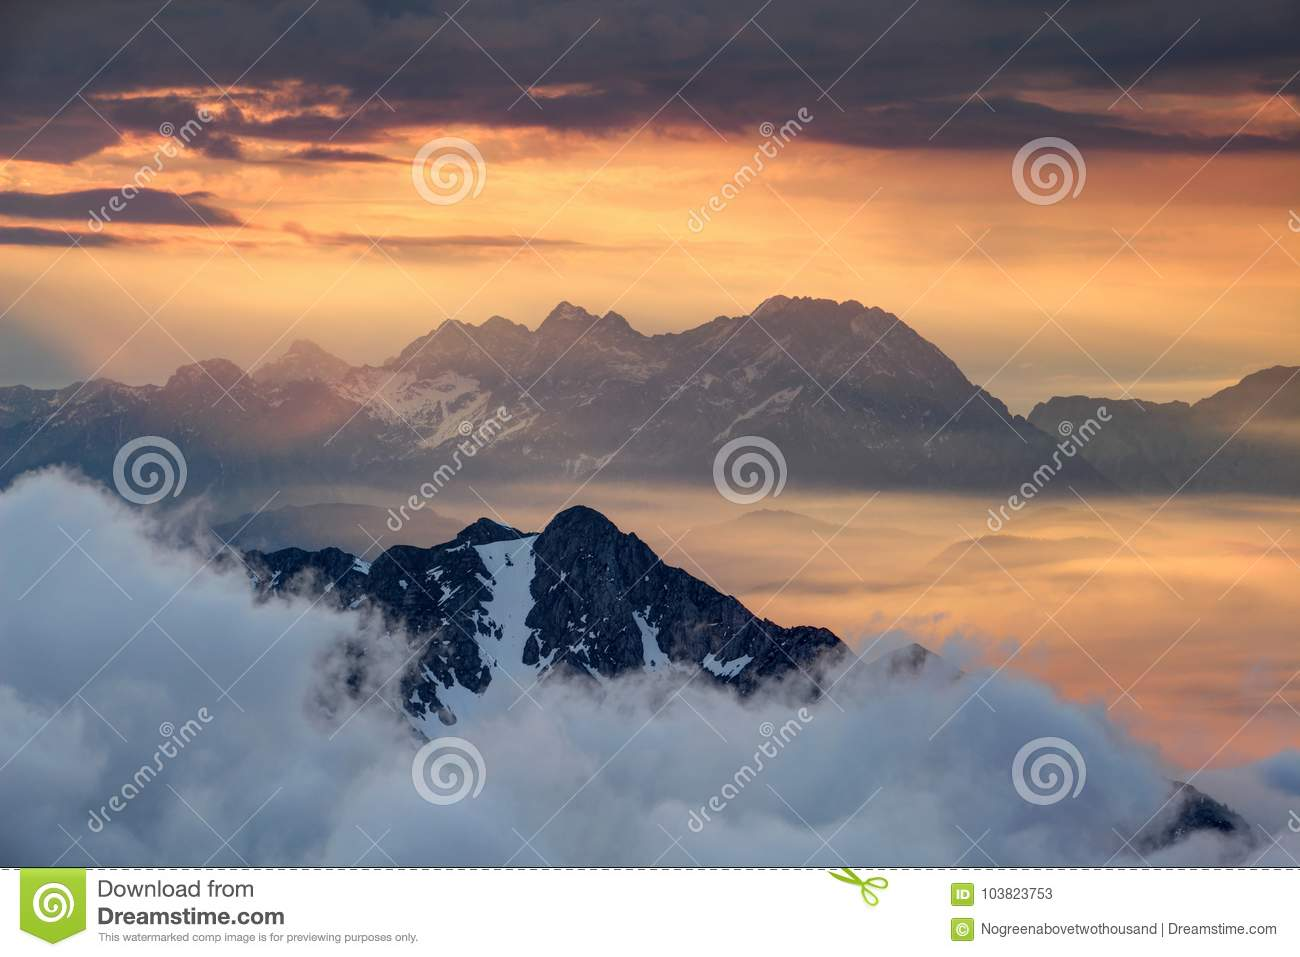 Sharp ridges above sea of clouds illuminated by rising red sun